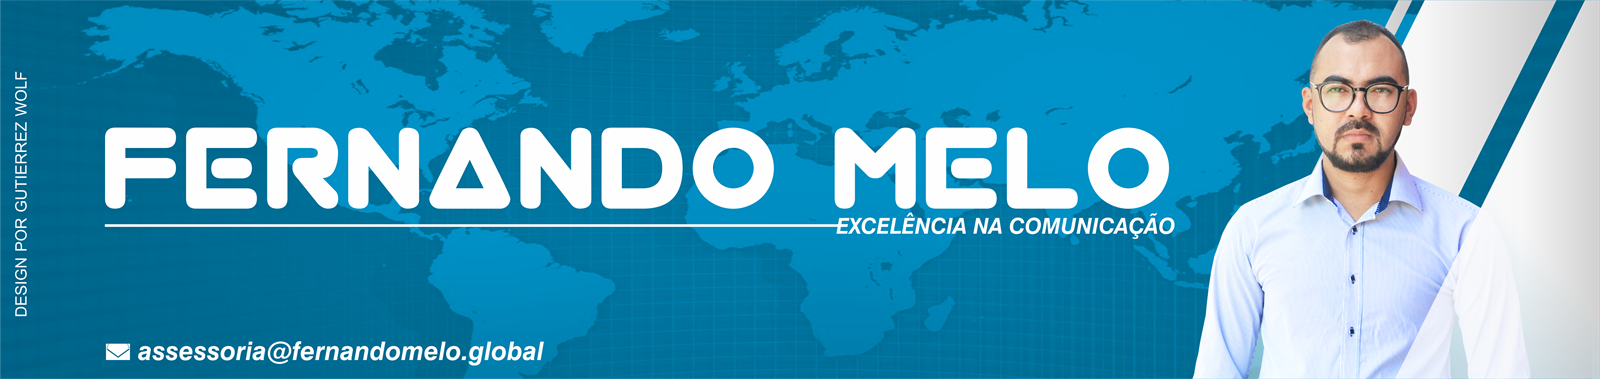 Blog do Fernando Melo